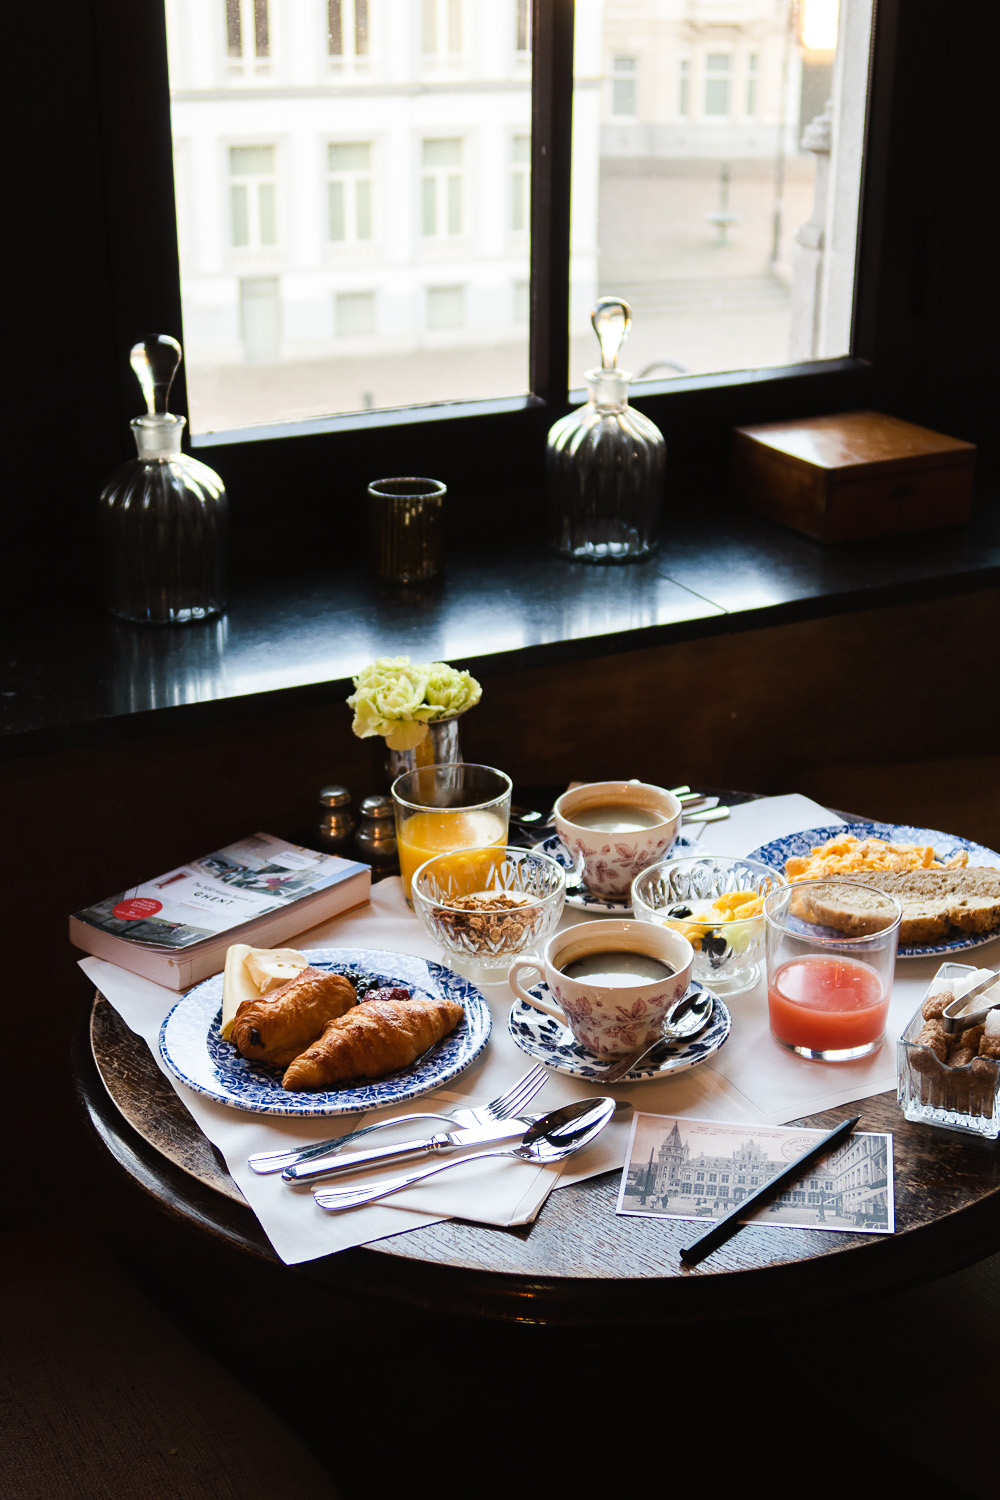 Breakfast at 1898 The Post Hotel | How To Spend a Long Weekend in Ghent, Belgium | Mondomulia